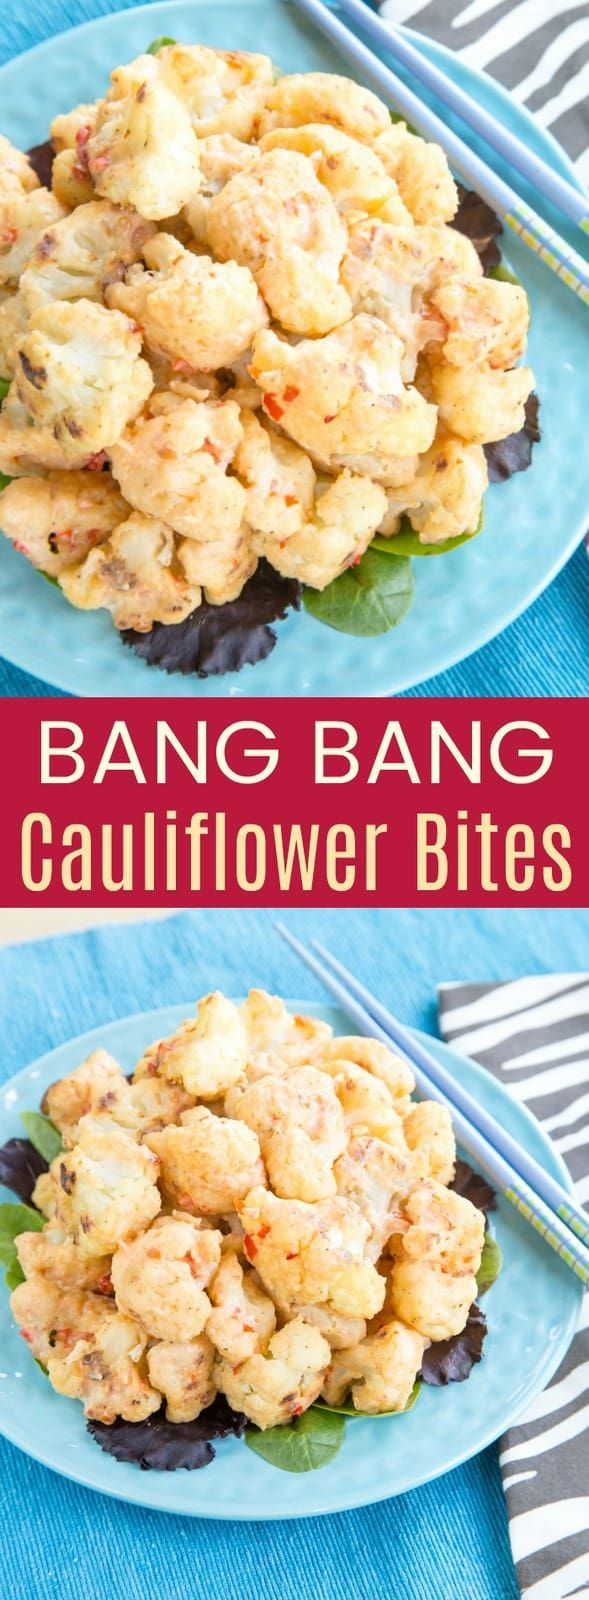 Bang Bang Cauliflower Bites - a sweet and spicy veggie version of a restaurant copycat recipe. These Asian-inspired bites are an addictive appetizer or vegetable side dish. #cupcakesandkalechips #cauliflower #cauliflowerbites #vegetarian #glutenfree #appetizer #appetizerrecipe #copycatrecipe